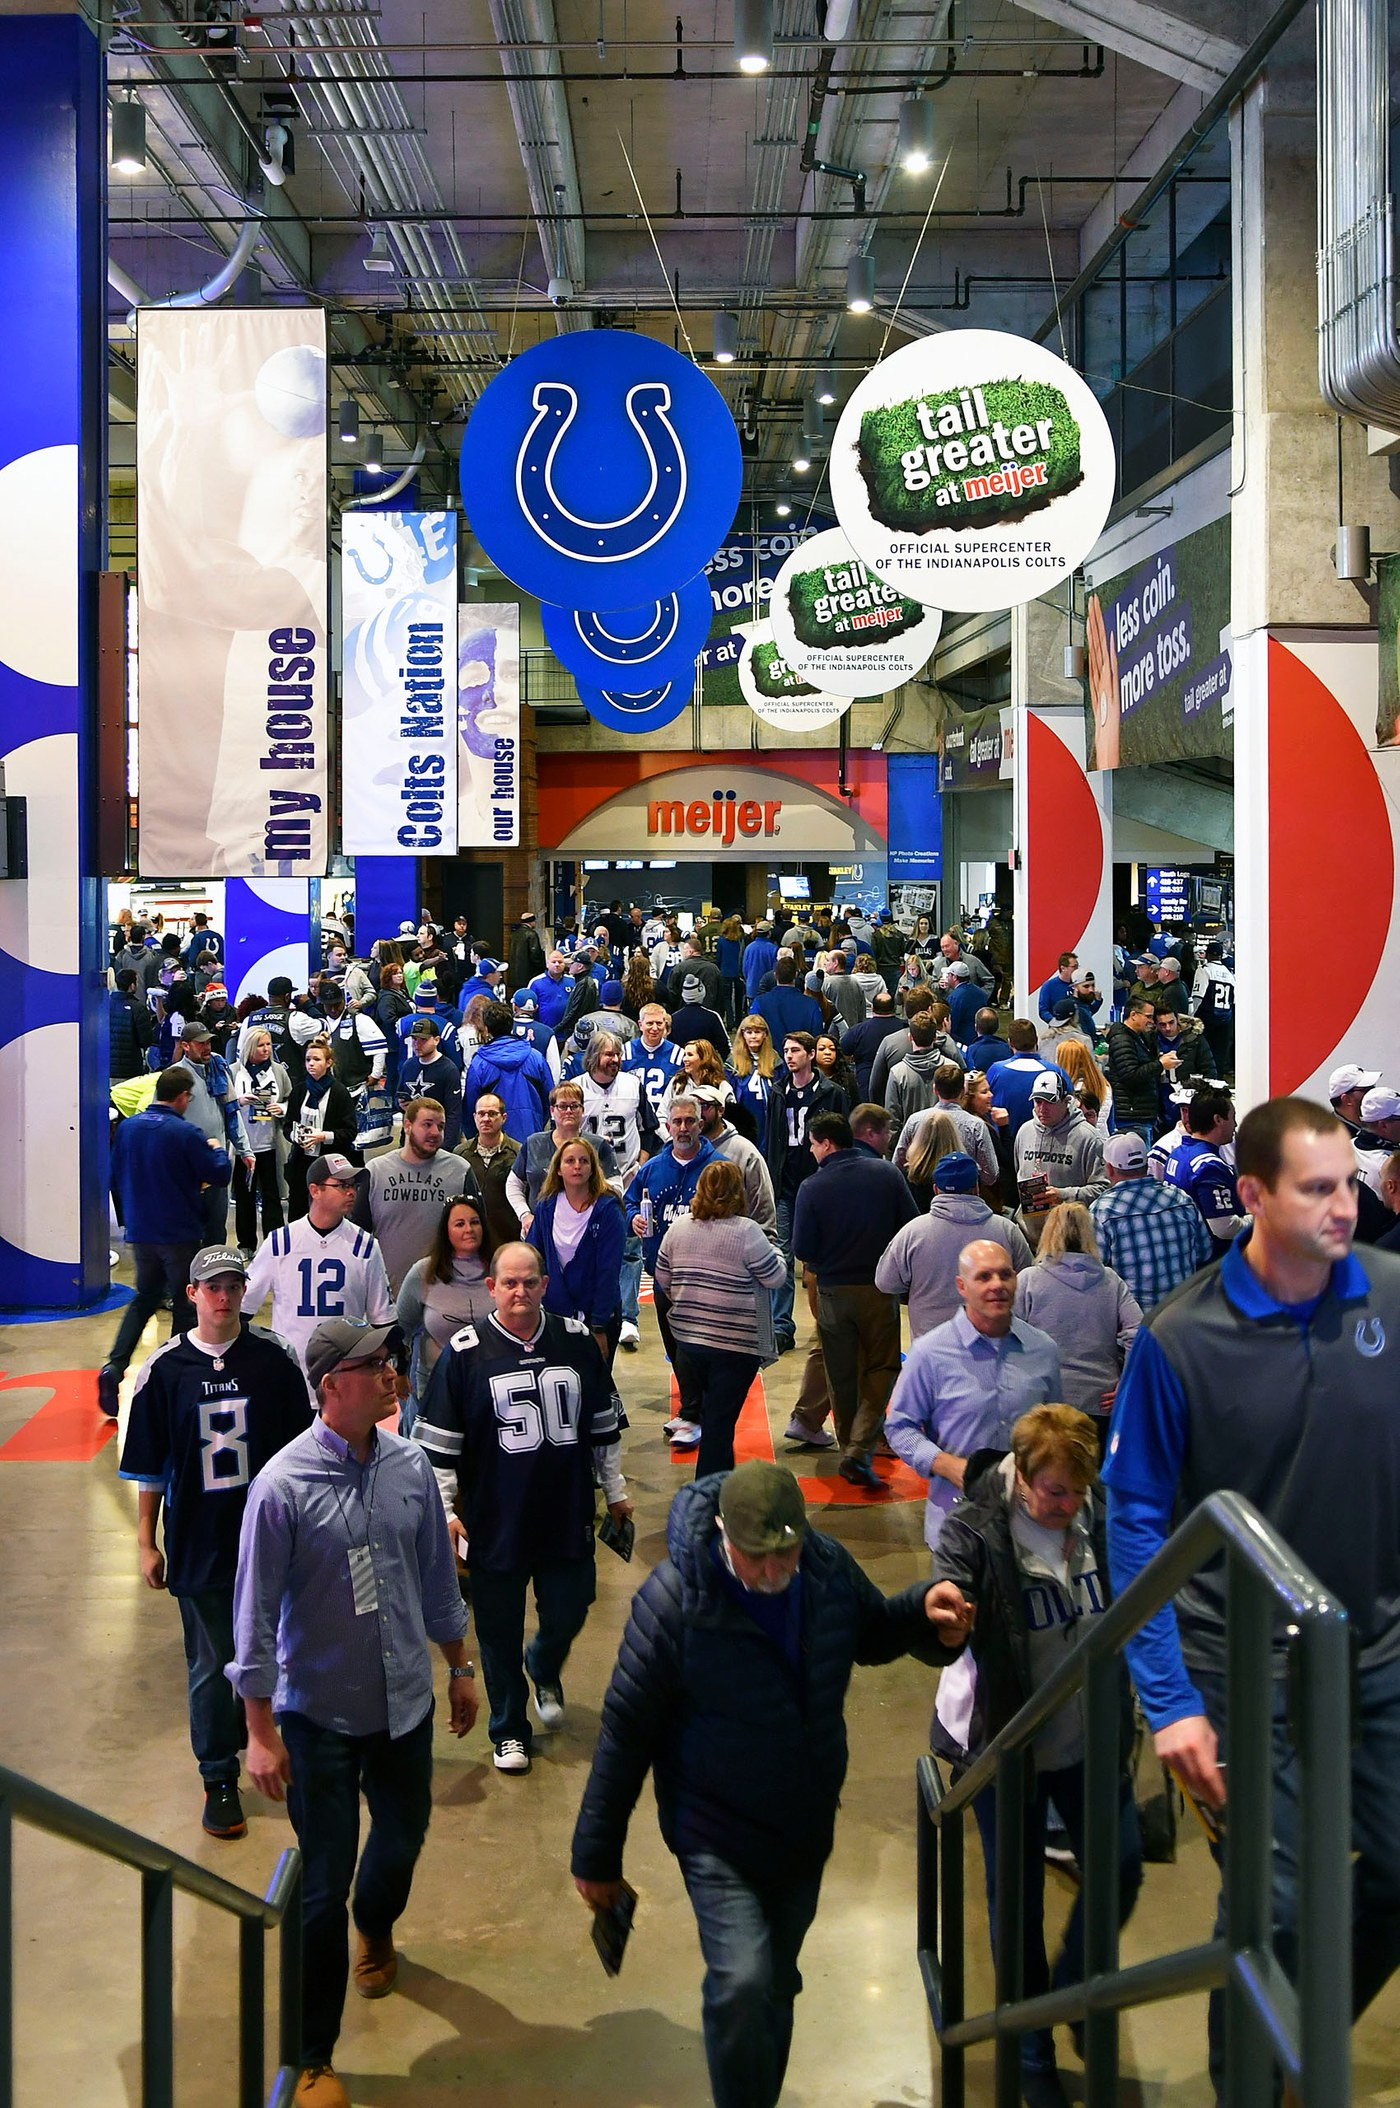 Game Day at Cowboys Colts game